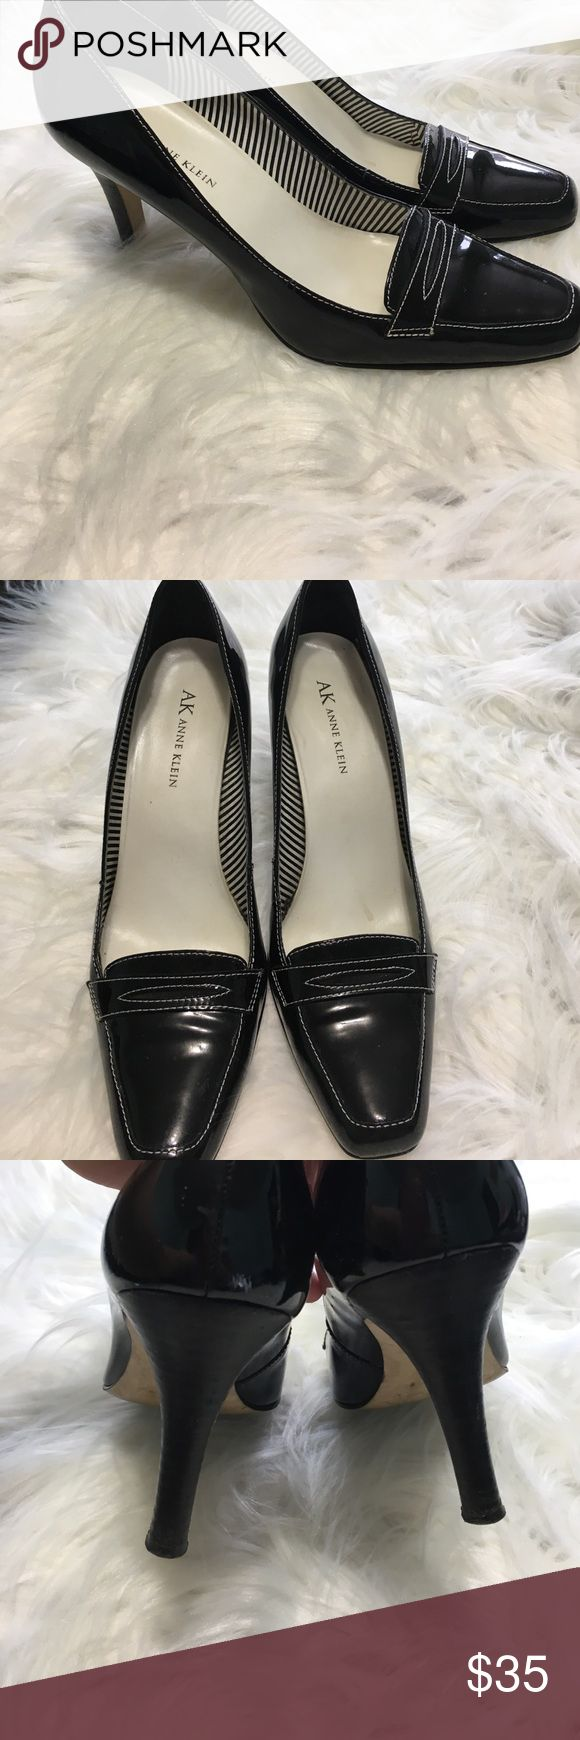 Anne Klein Size 7.5 Black Shiny Heel Essential shoe!  Black and shiny.  Kick ass boss-lady shoe!  Size 7.5. Pre loves but still in very good condition!  Pictures of wear are included! 3.5 inch heel. Anne Klein Shoes Heels